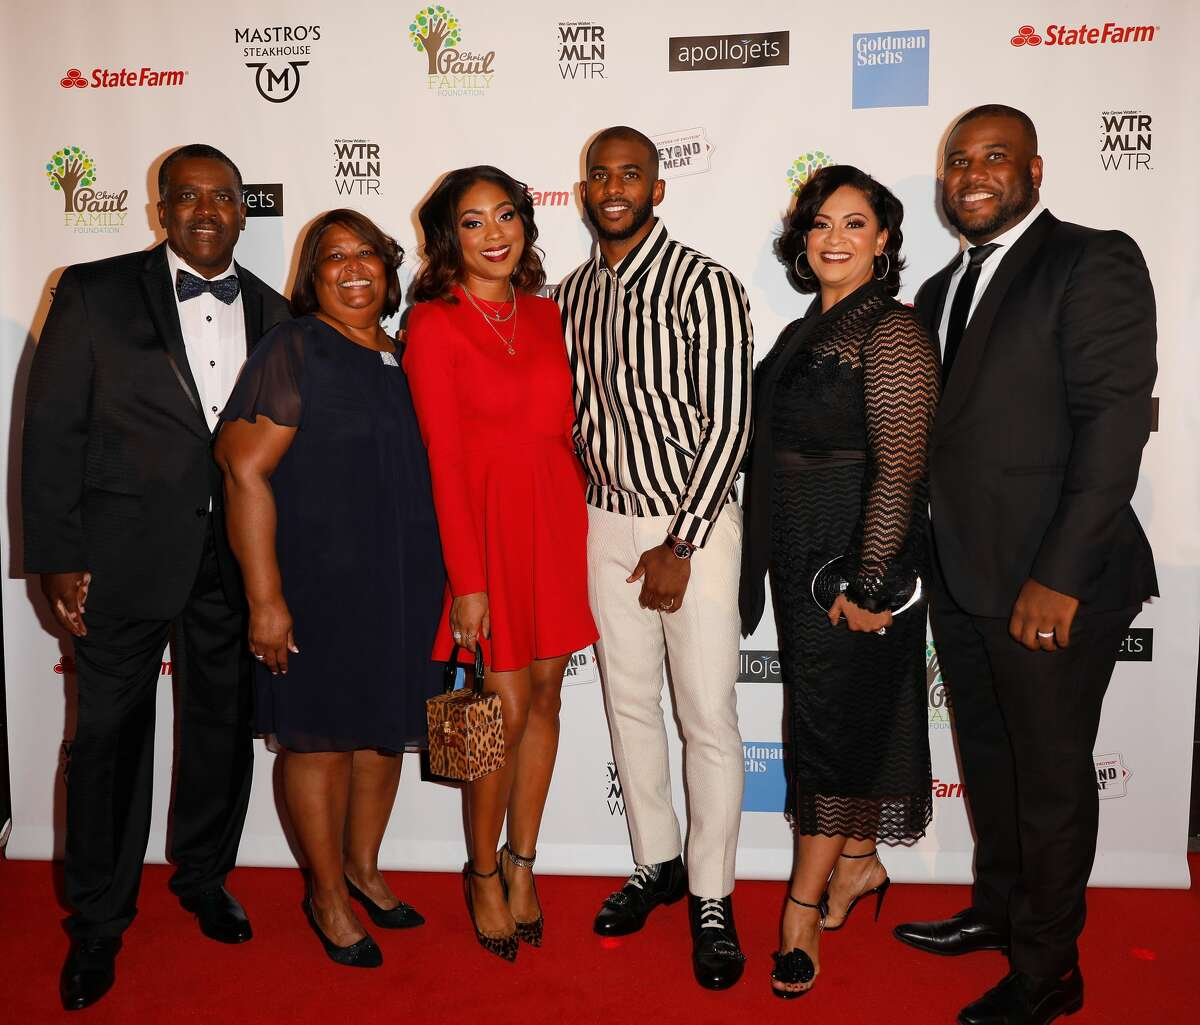 """HOUSTON, TX - OCTOBER 28: (L-R) Charles Paul, Robin Paul, Jada Crawley, Chris Paul, Desiree Paul and CJ Paul arrive at the Chris Paul Family Foundation's """"Celebrity Server"""" Fundraiser at Mastro's Steakhouse on October 28, 2018 in Houston, Texas. (Photo by Bob Levey/Getty Images)"""